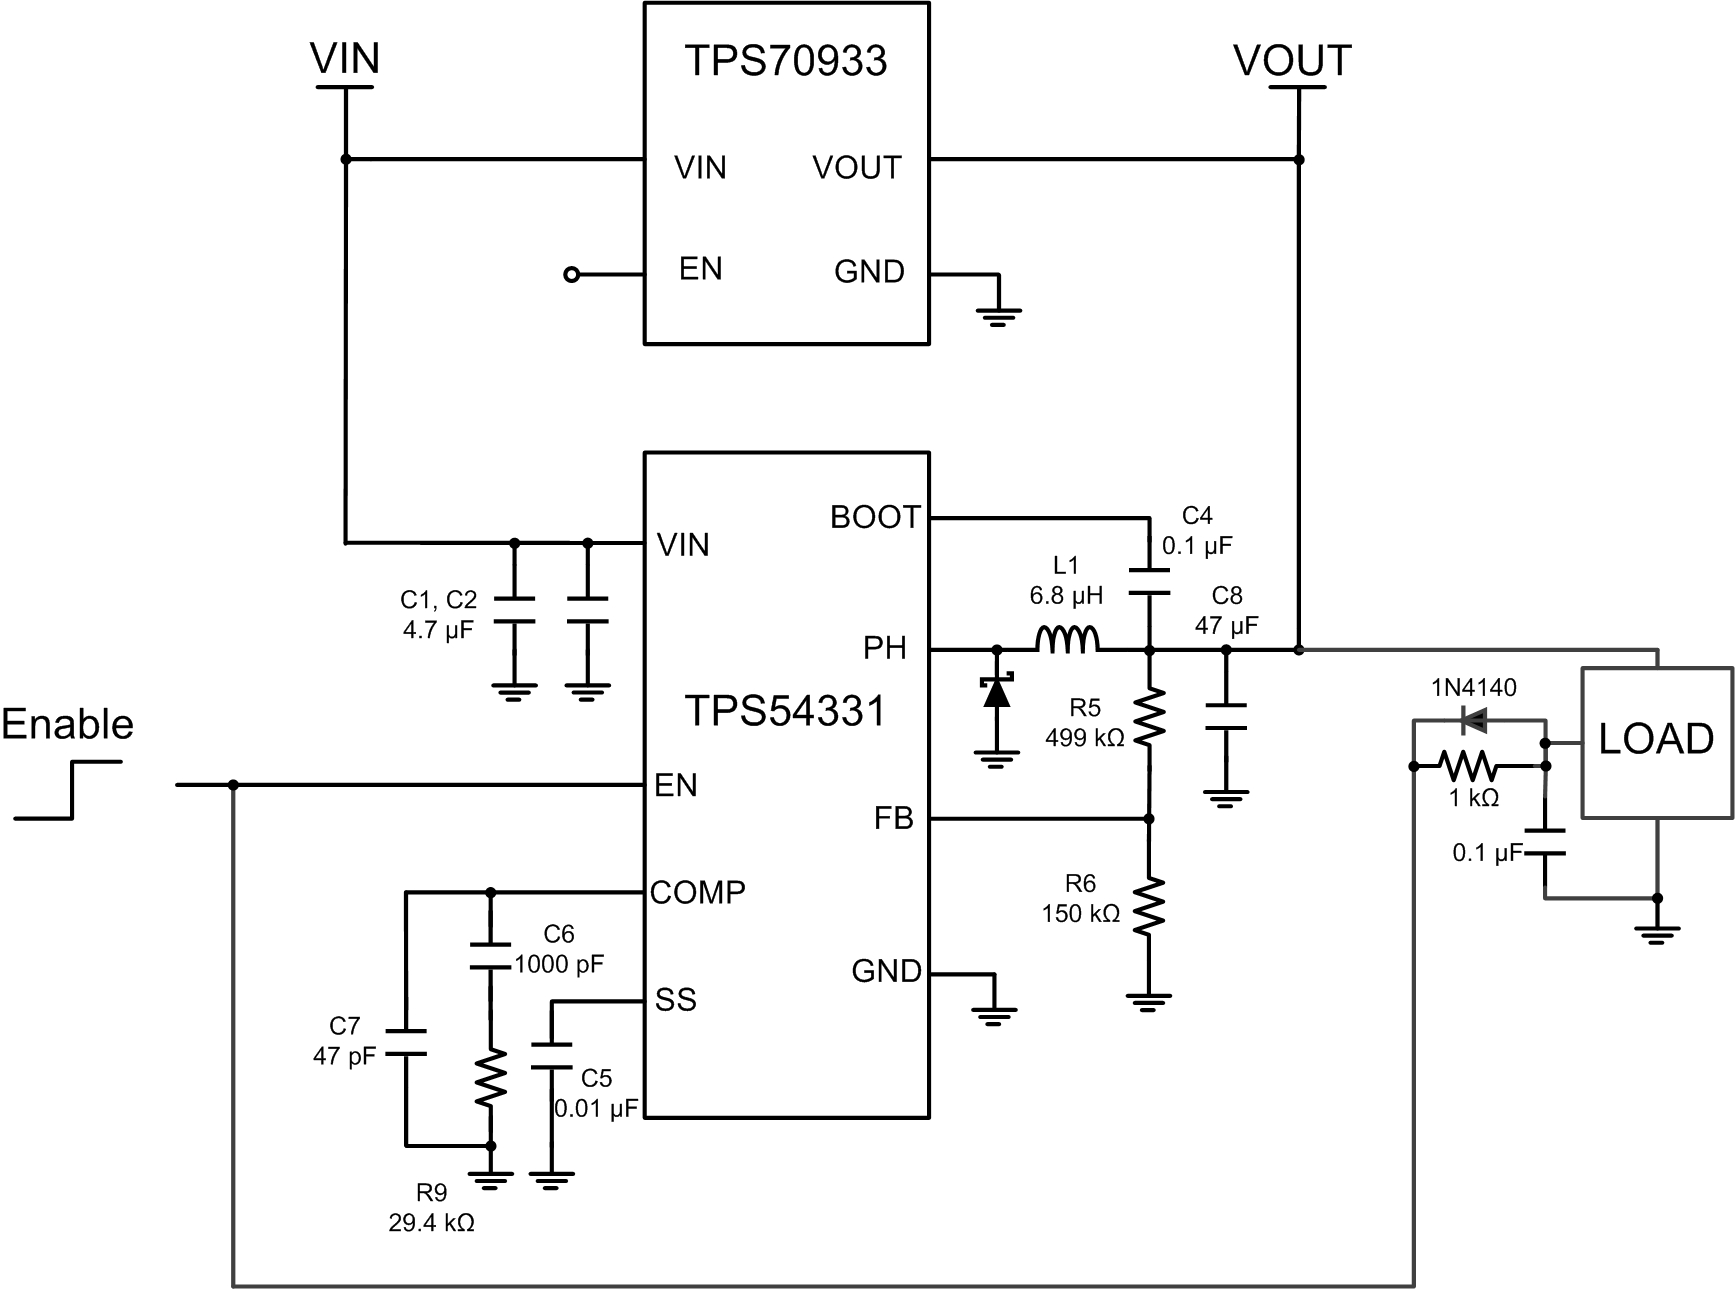 How To Improve Buck Converter Light Load Efficiency With An Ldo Resistors In Parallel Switches Series A Diode The Resistor Can Achieve This Figure 3 Shows Example Of Circuit